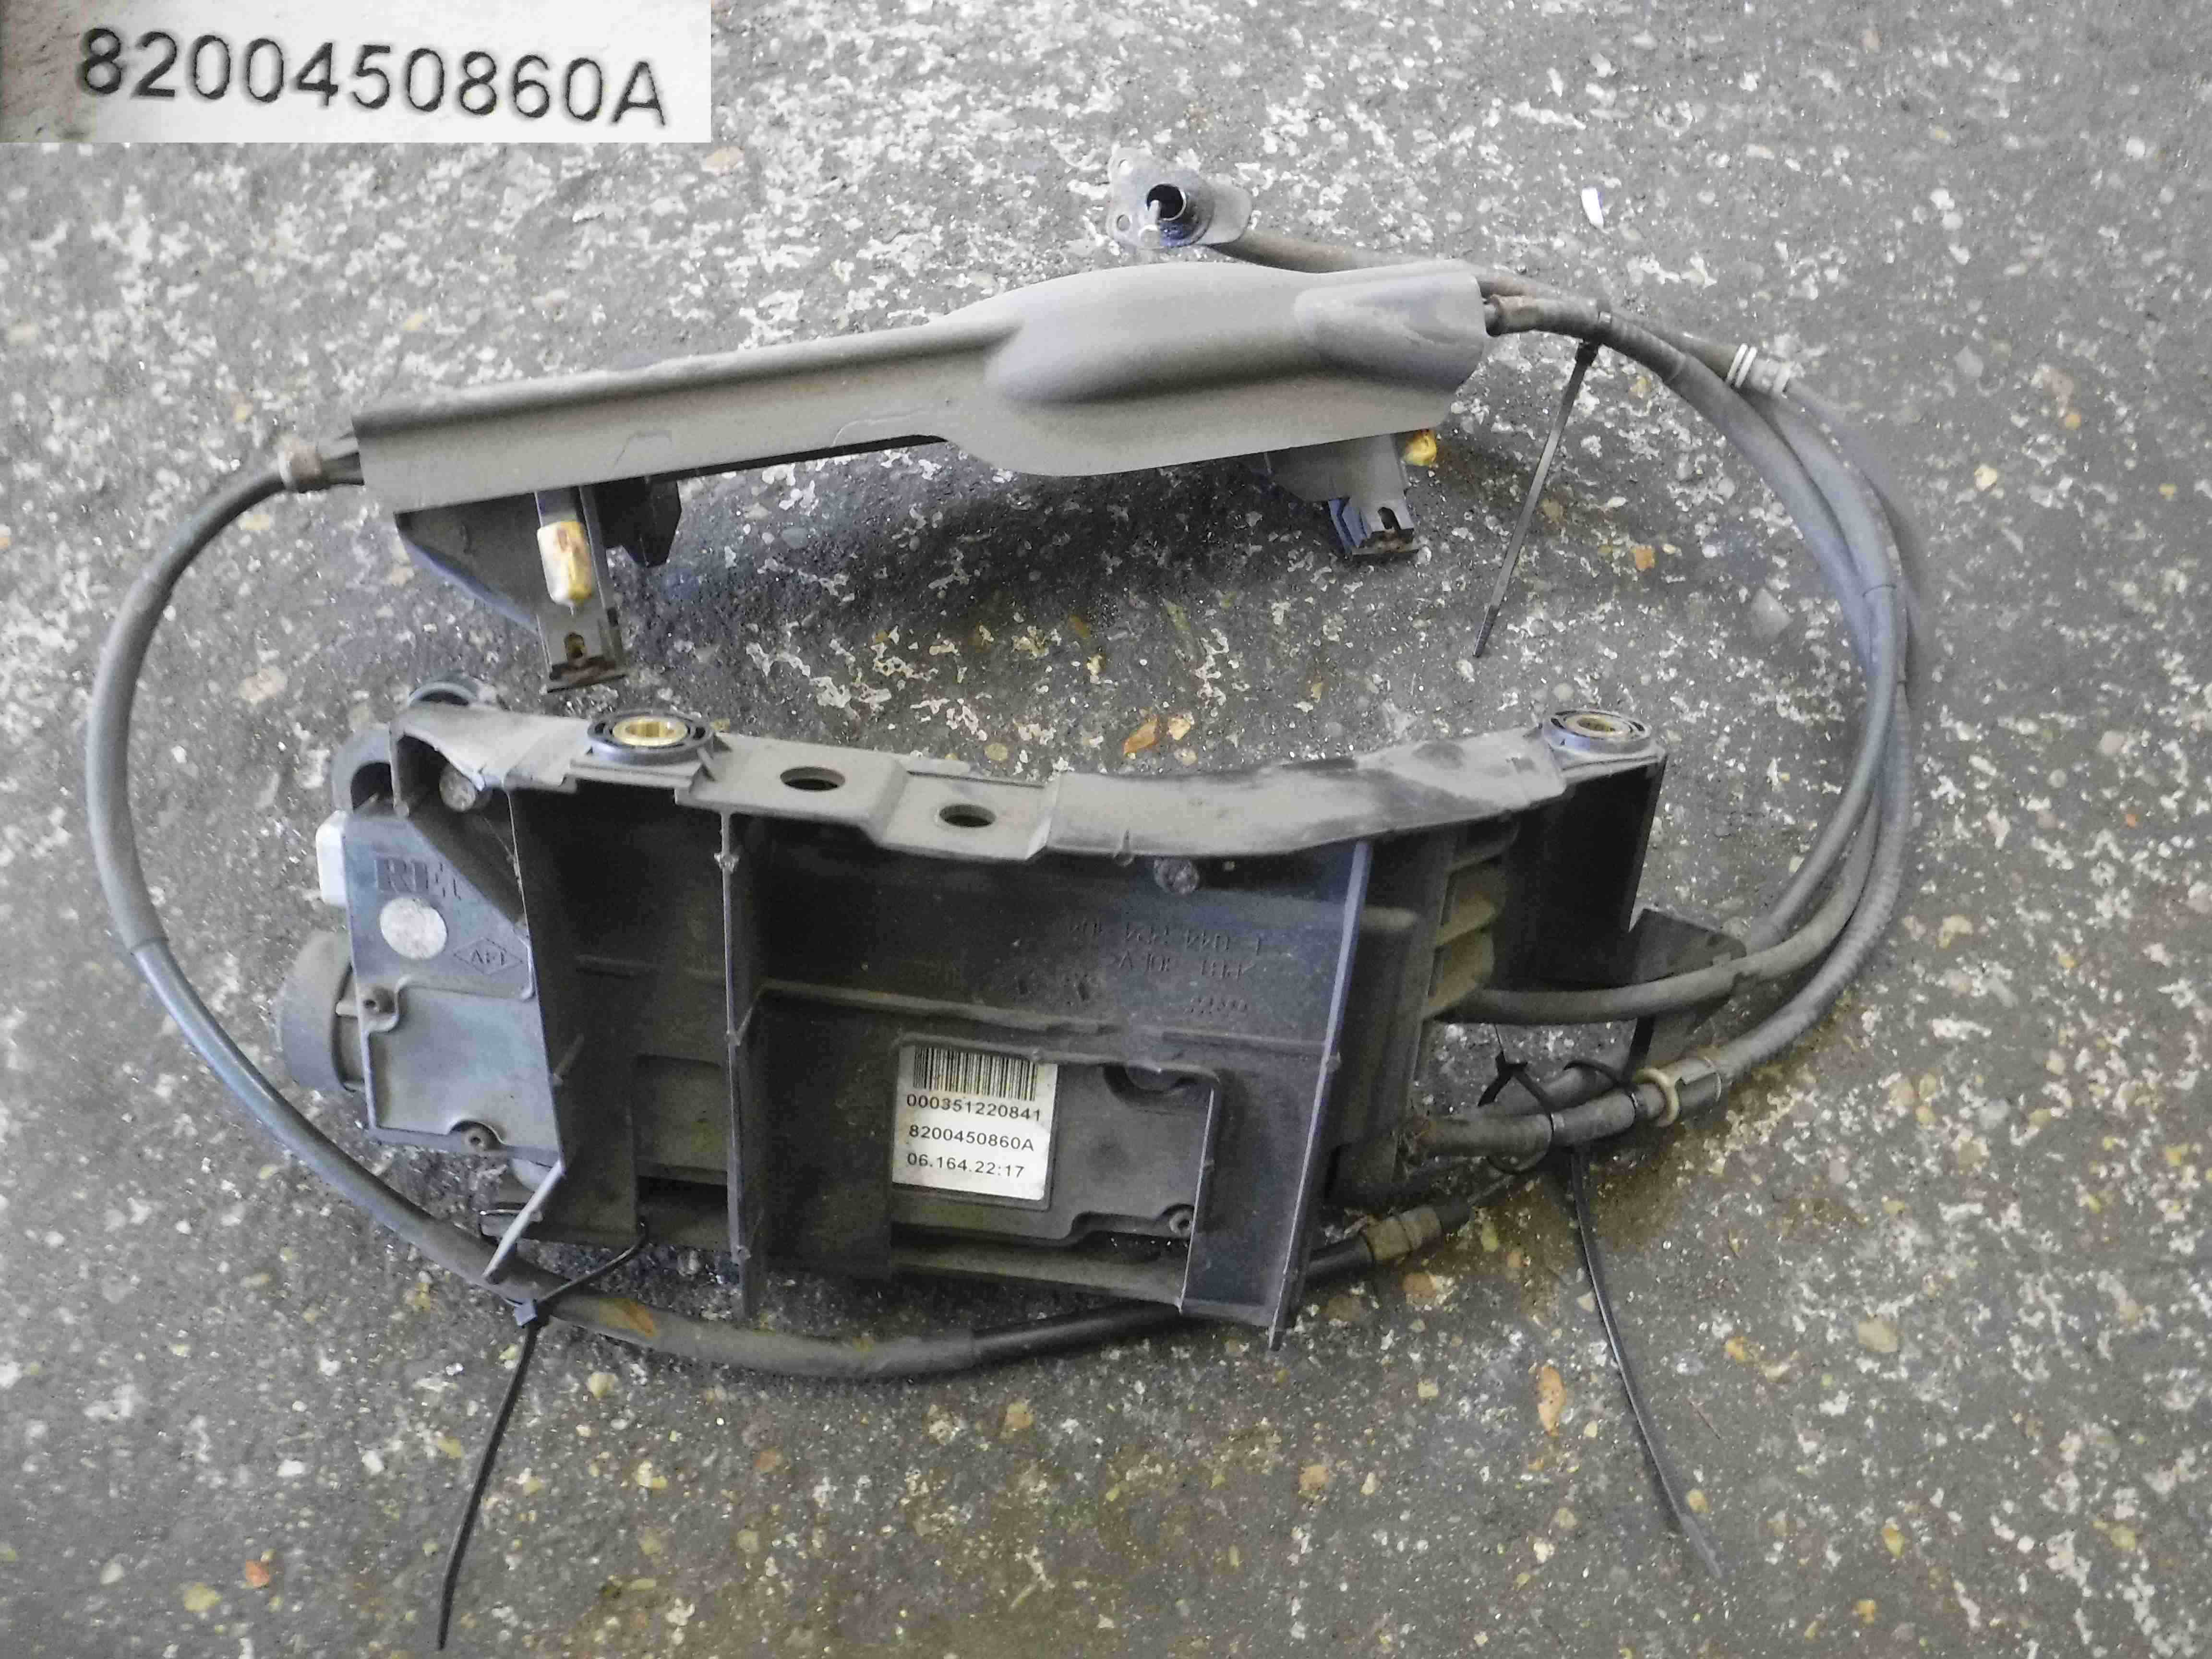 Renault Scenic 2003-2009 Electronic Handbrake Motor + Cables 8200450860